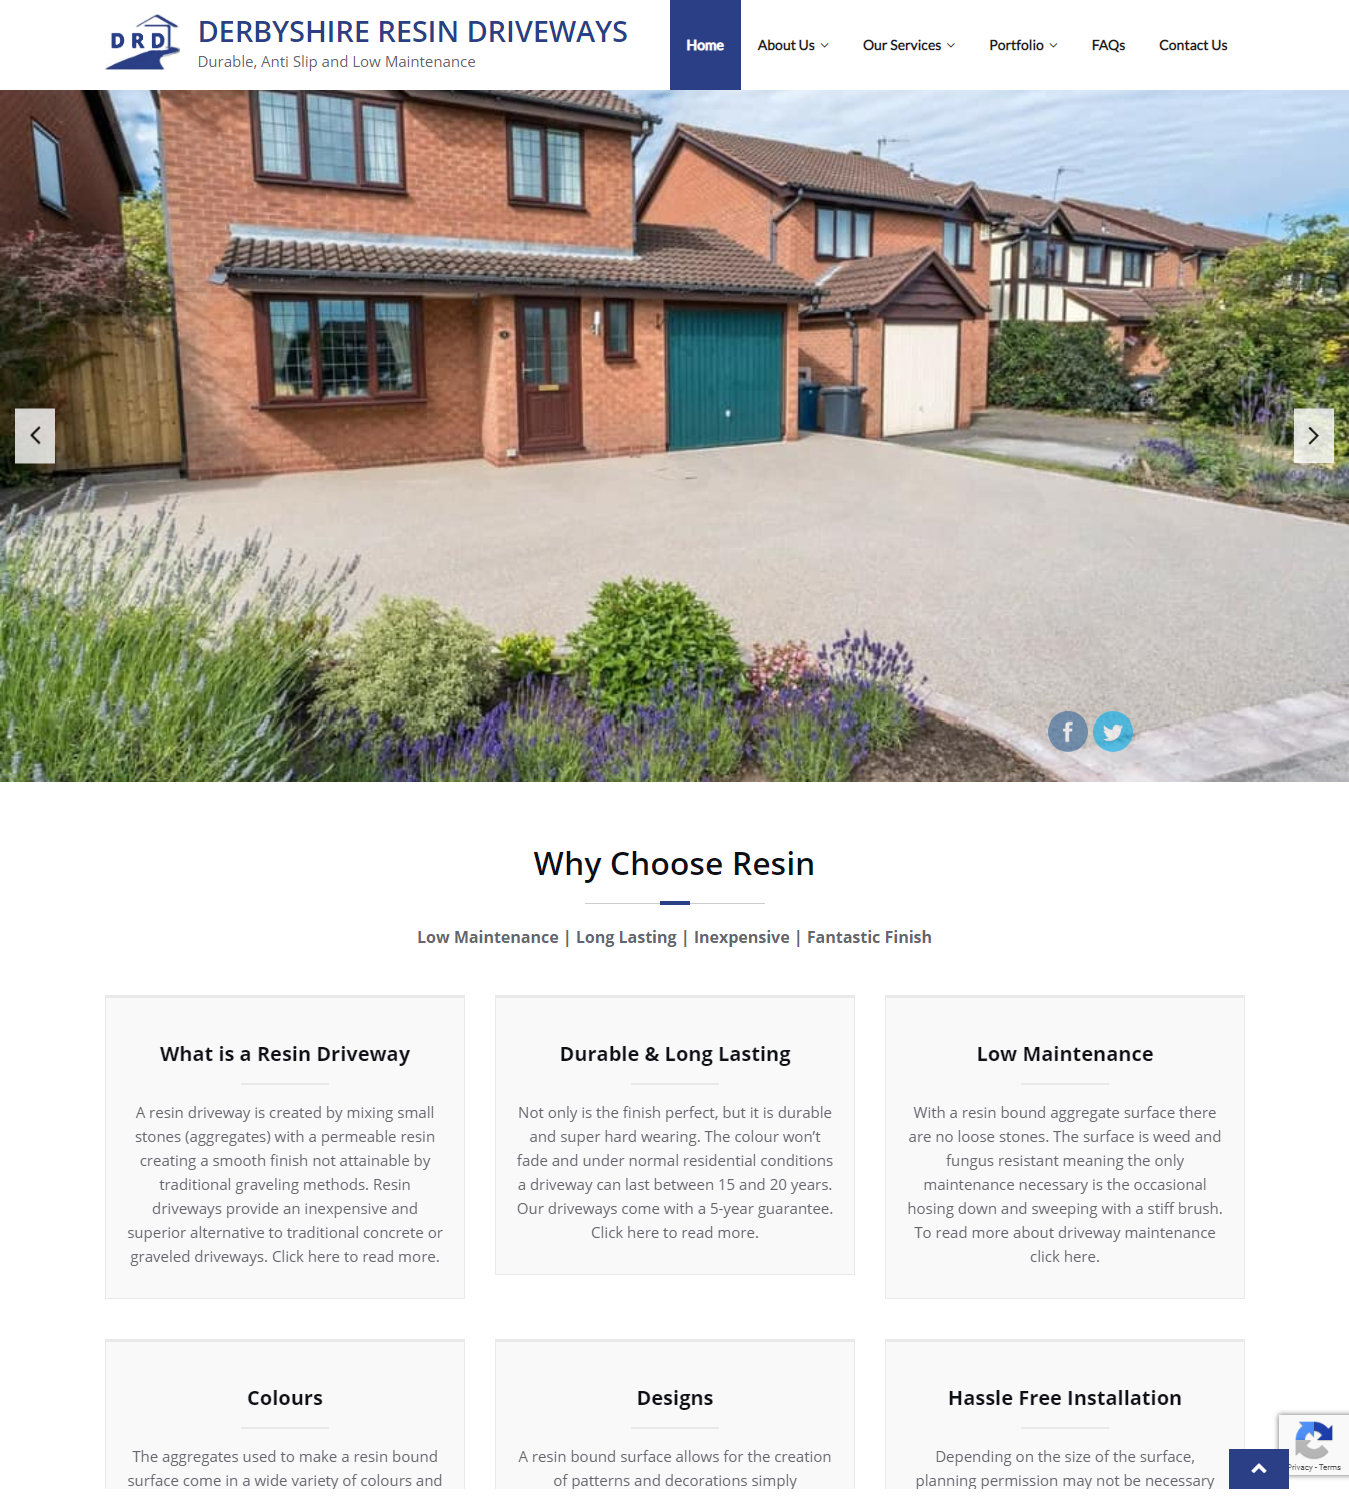 Project Spotlight: Derbyshire Resin Driveways